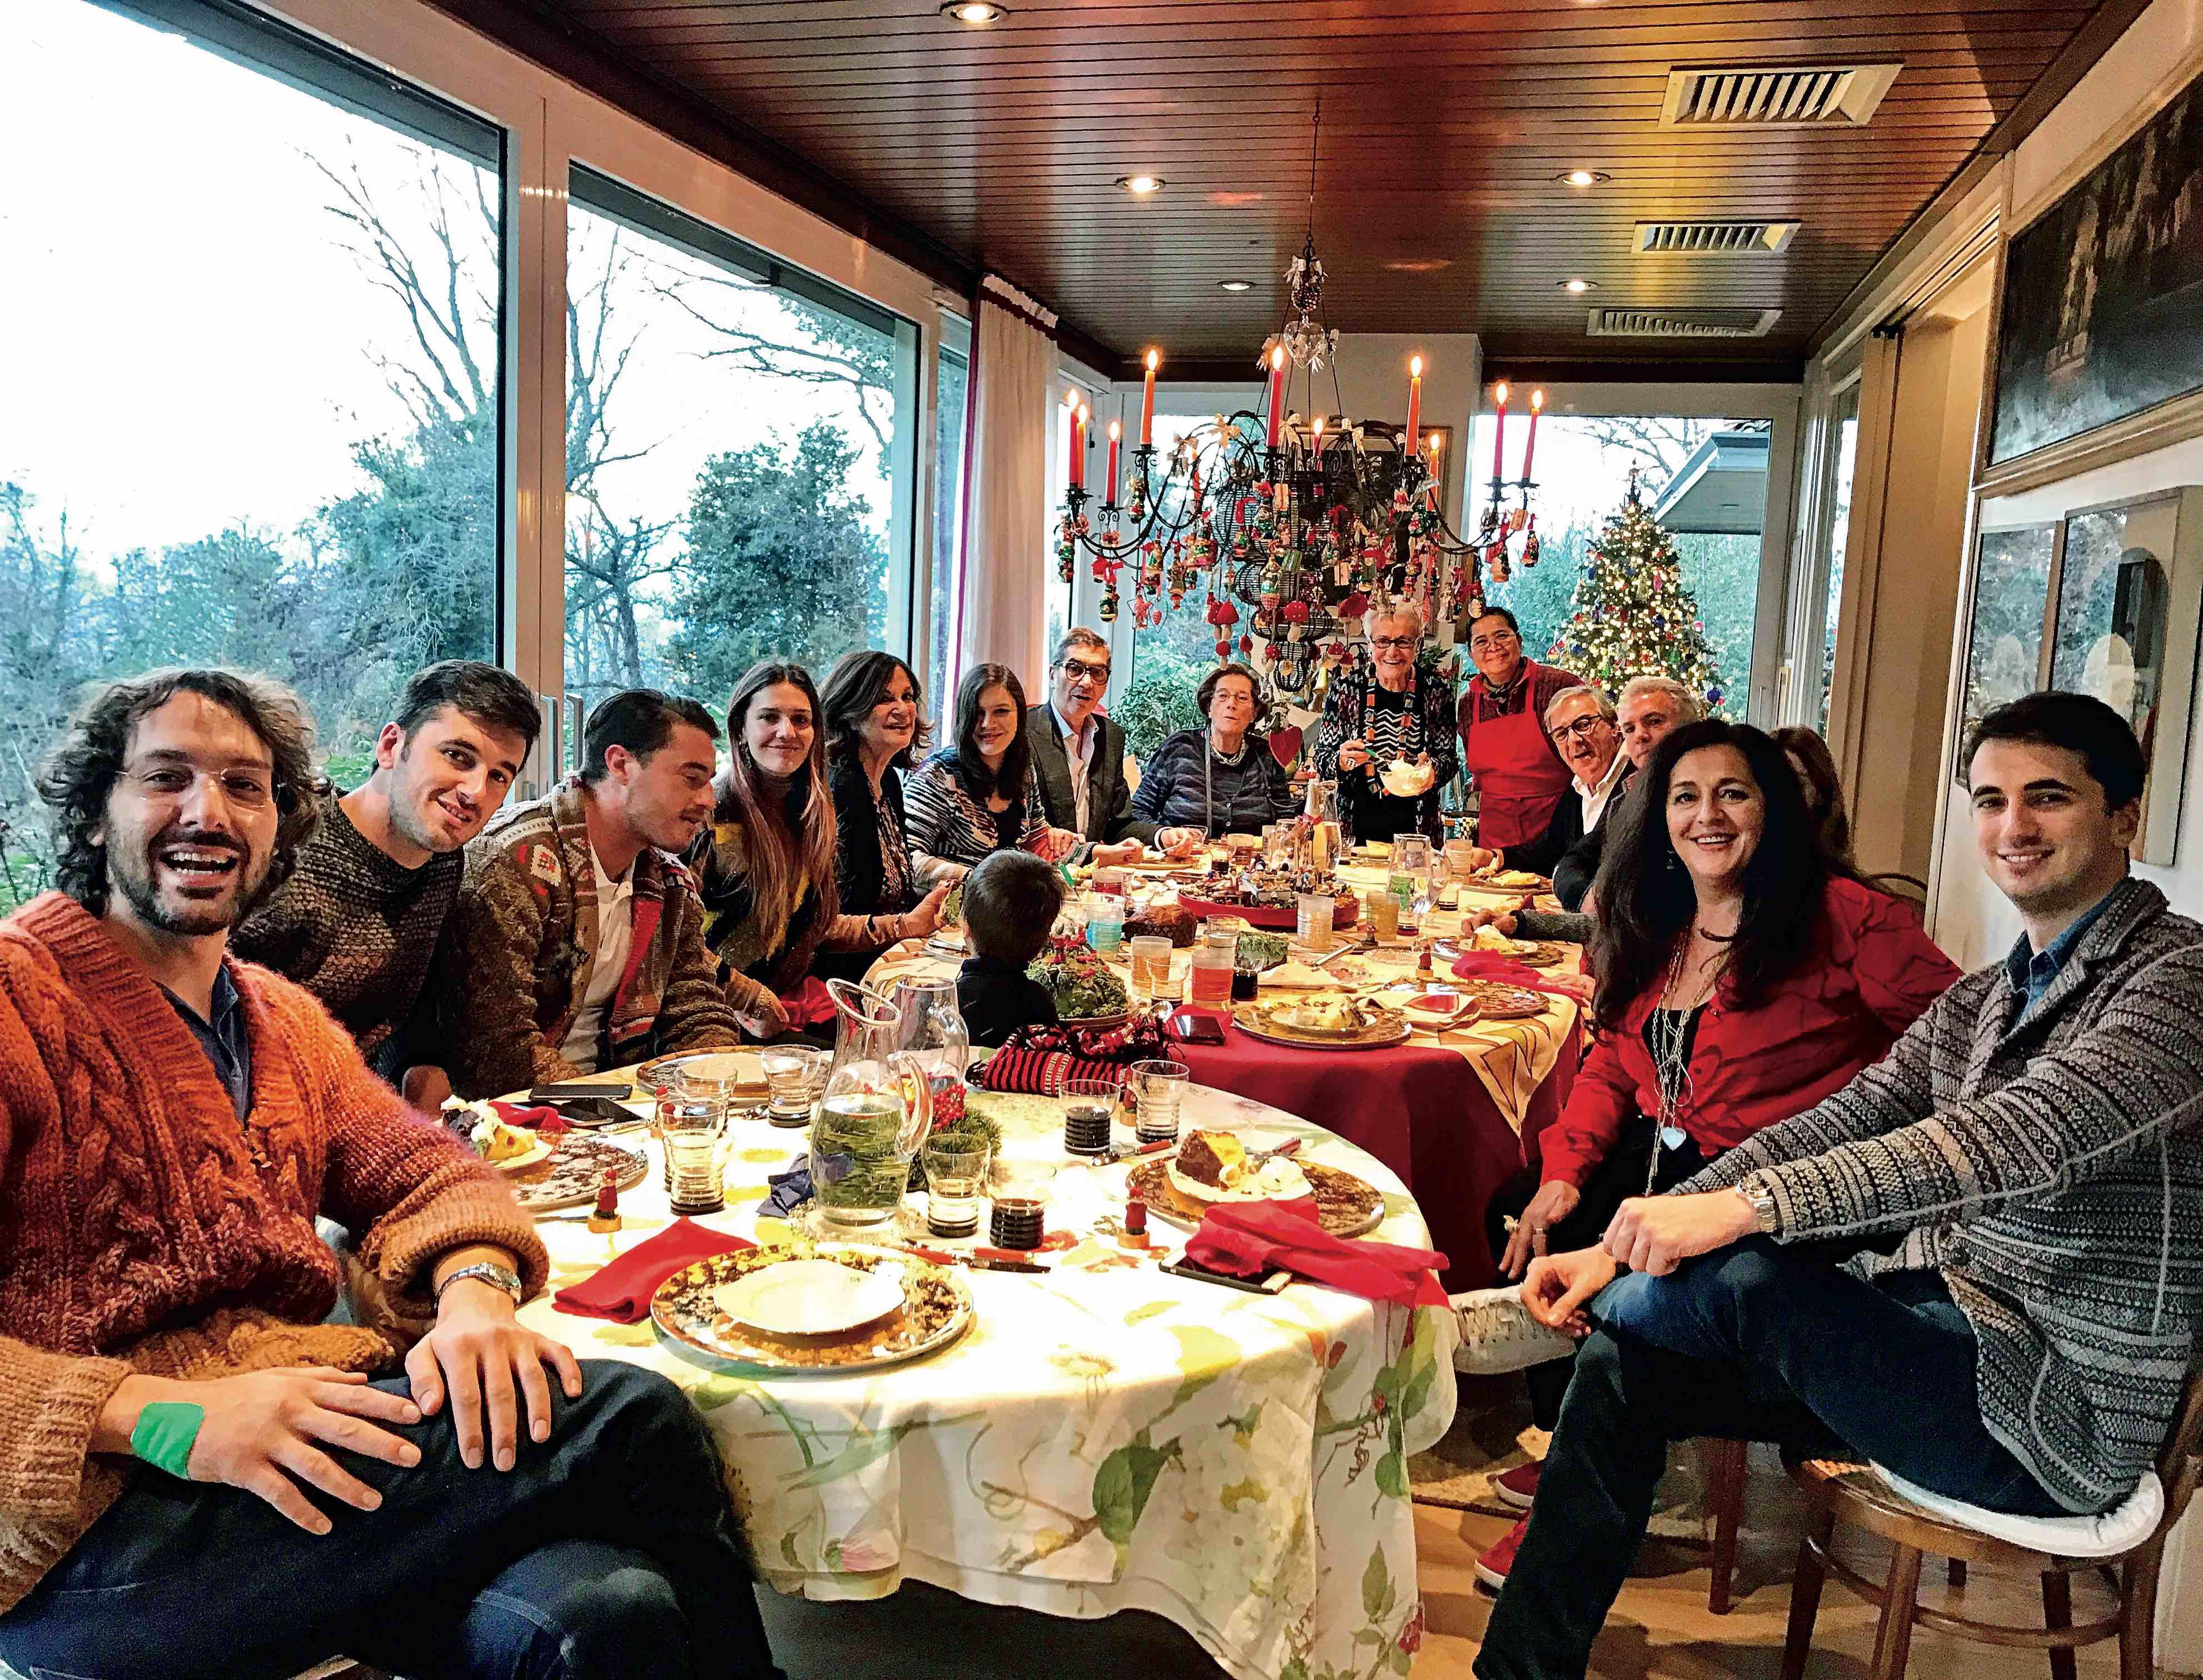 Christmas according to the Missoni family